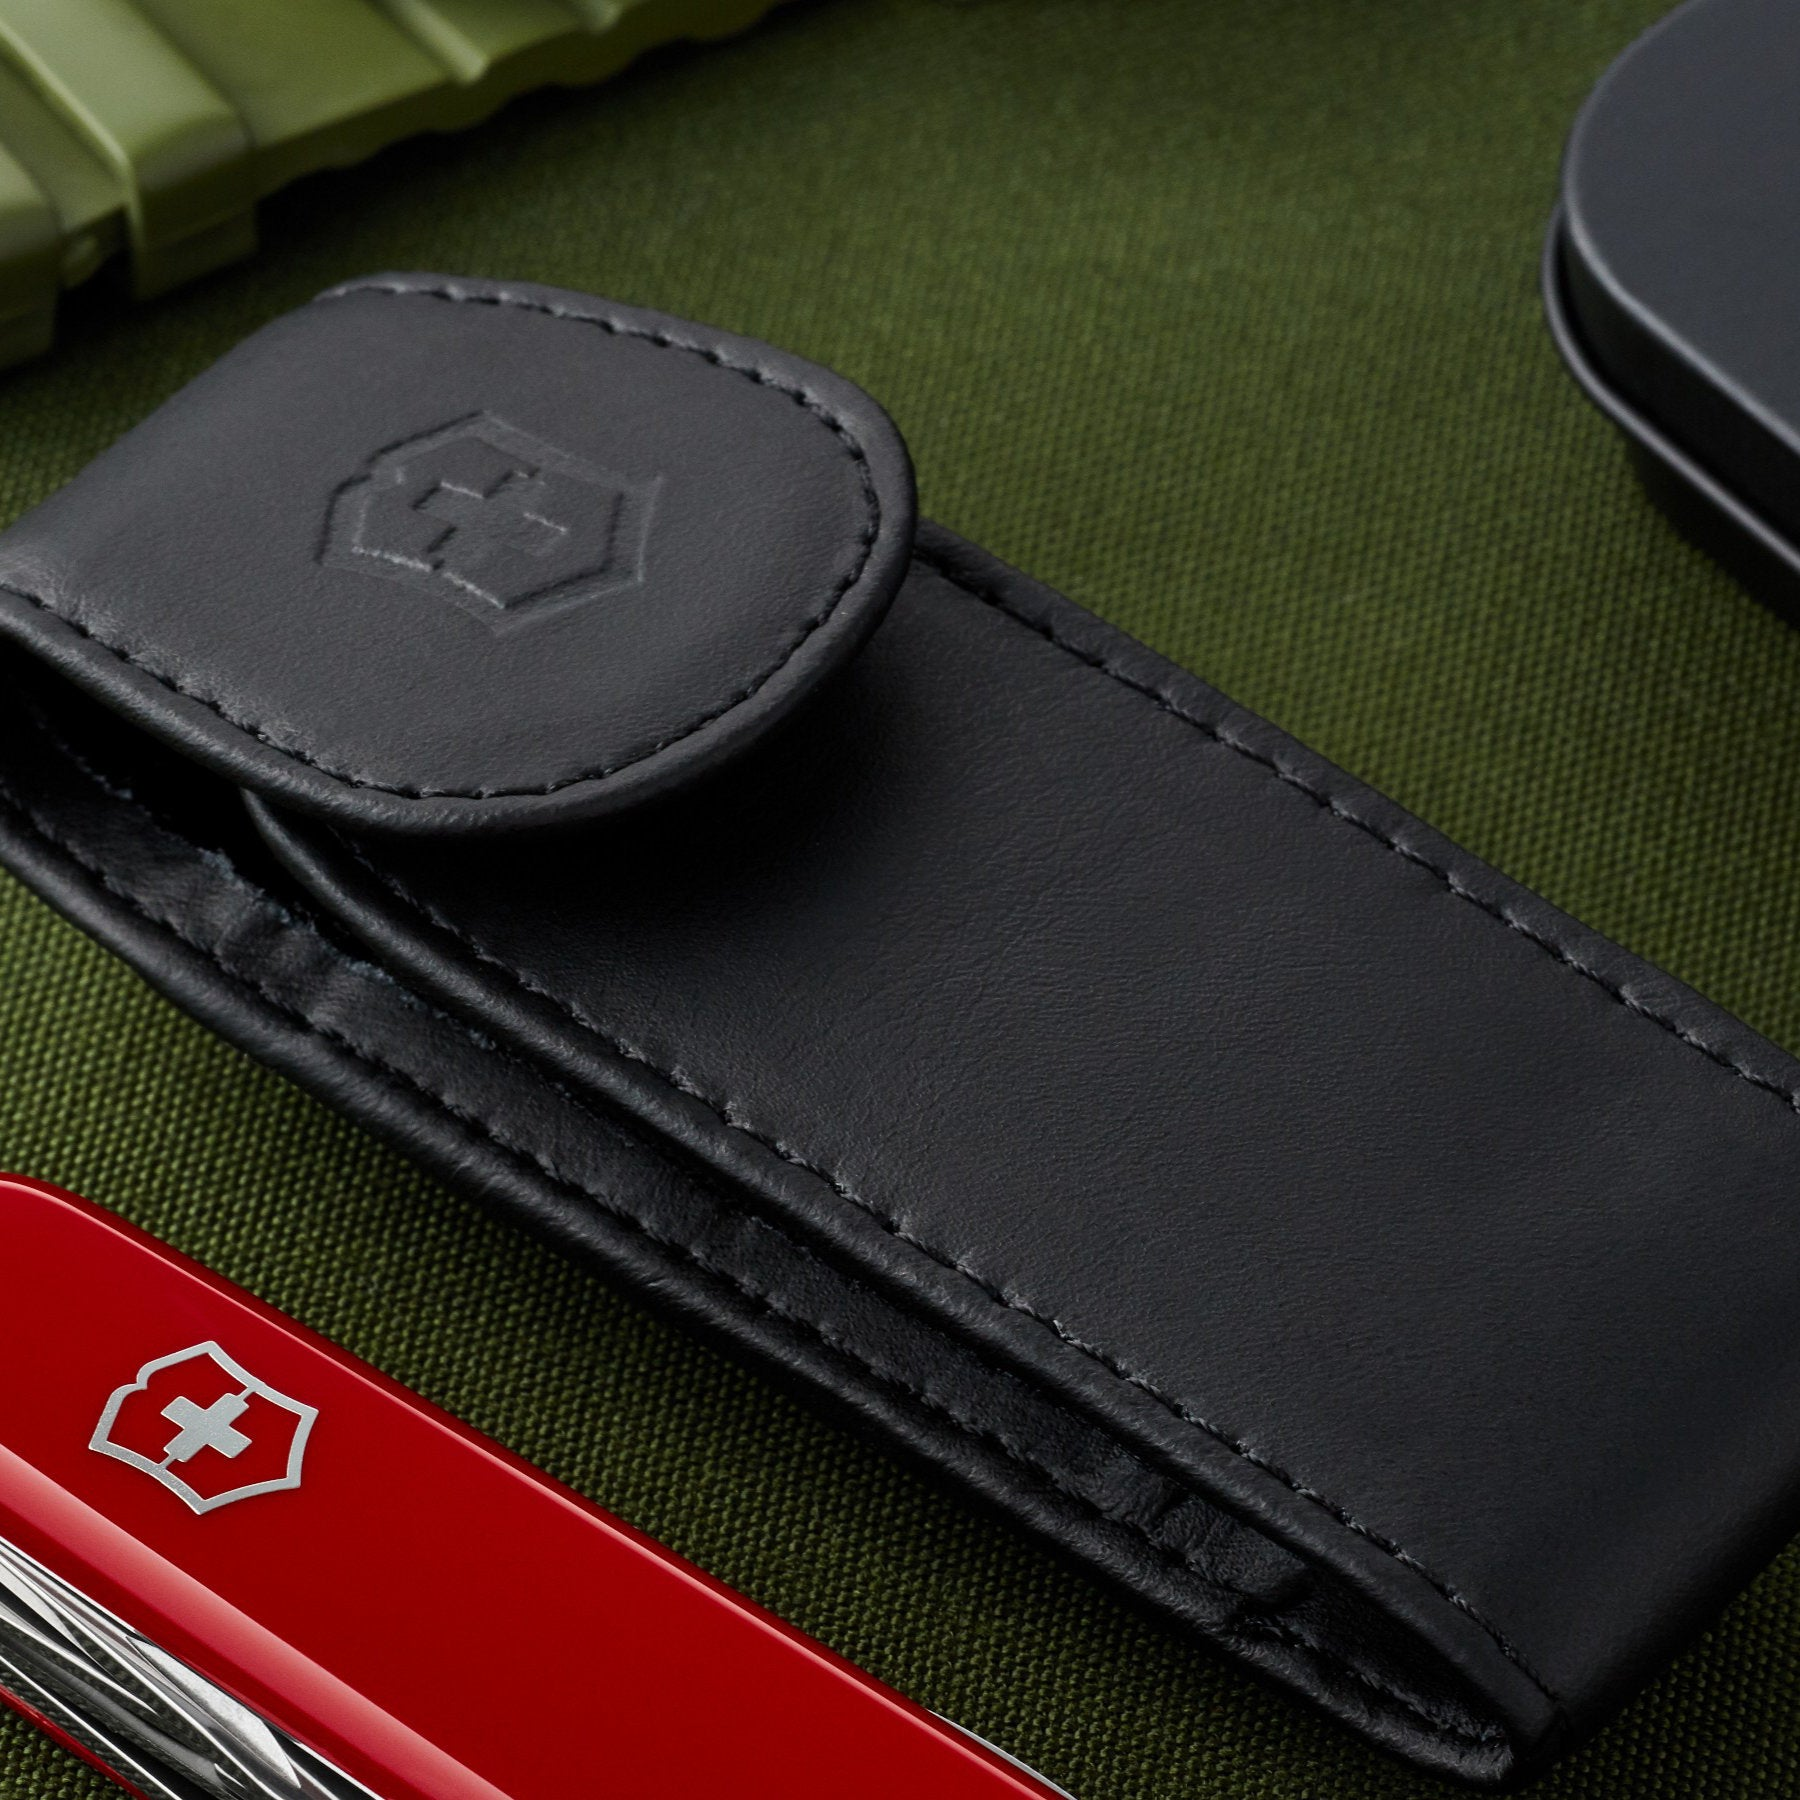 Swiss Army Pouches and Sheaths by Victorinox